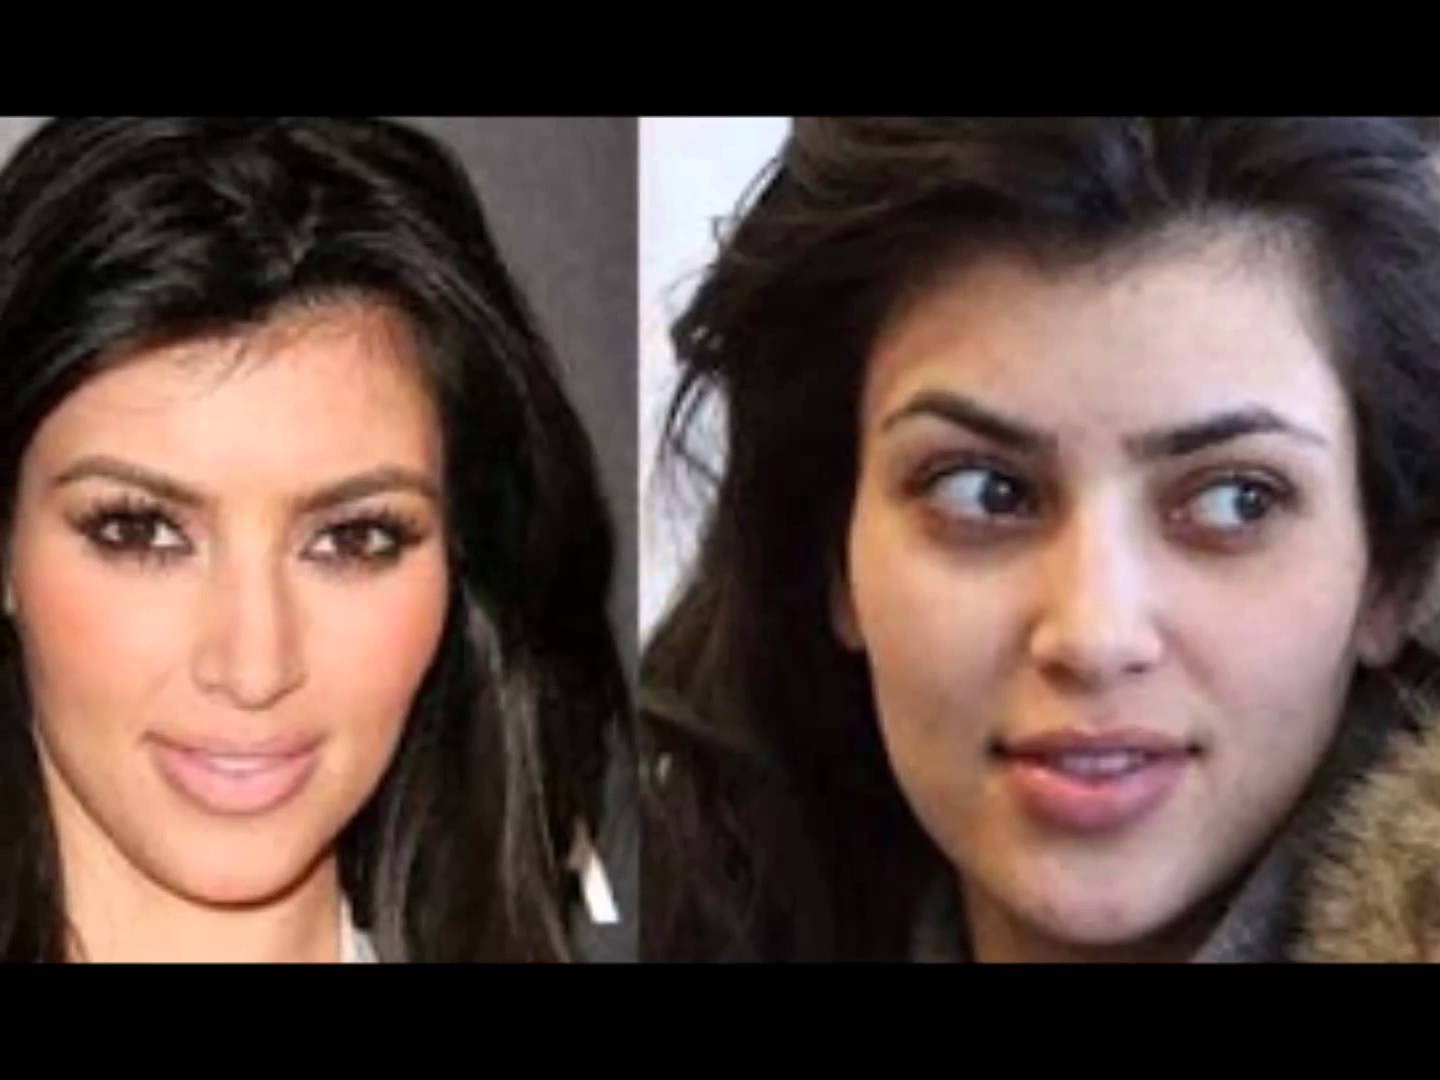 Ego celebrity pics without makeup